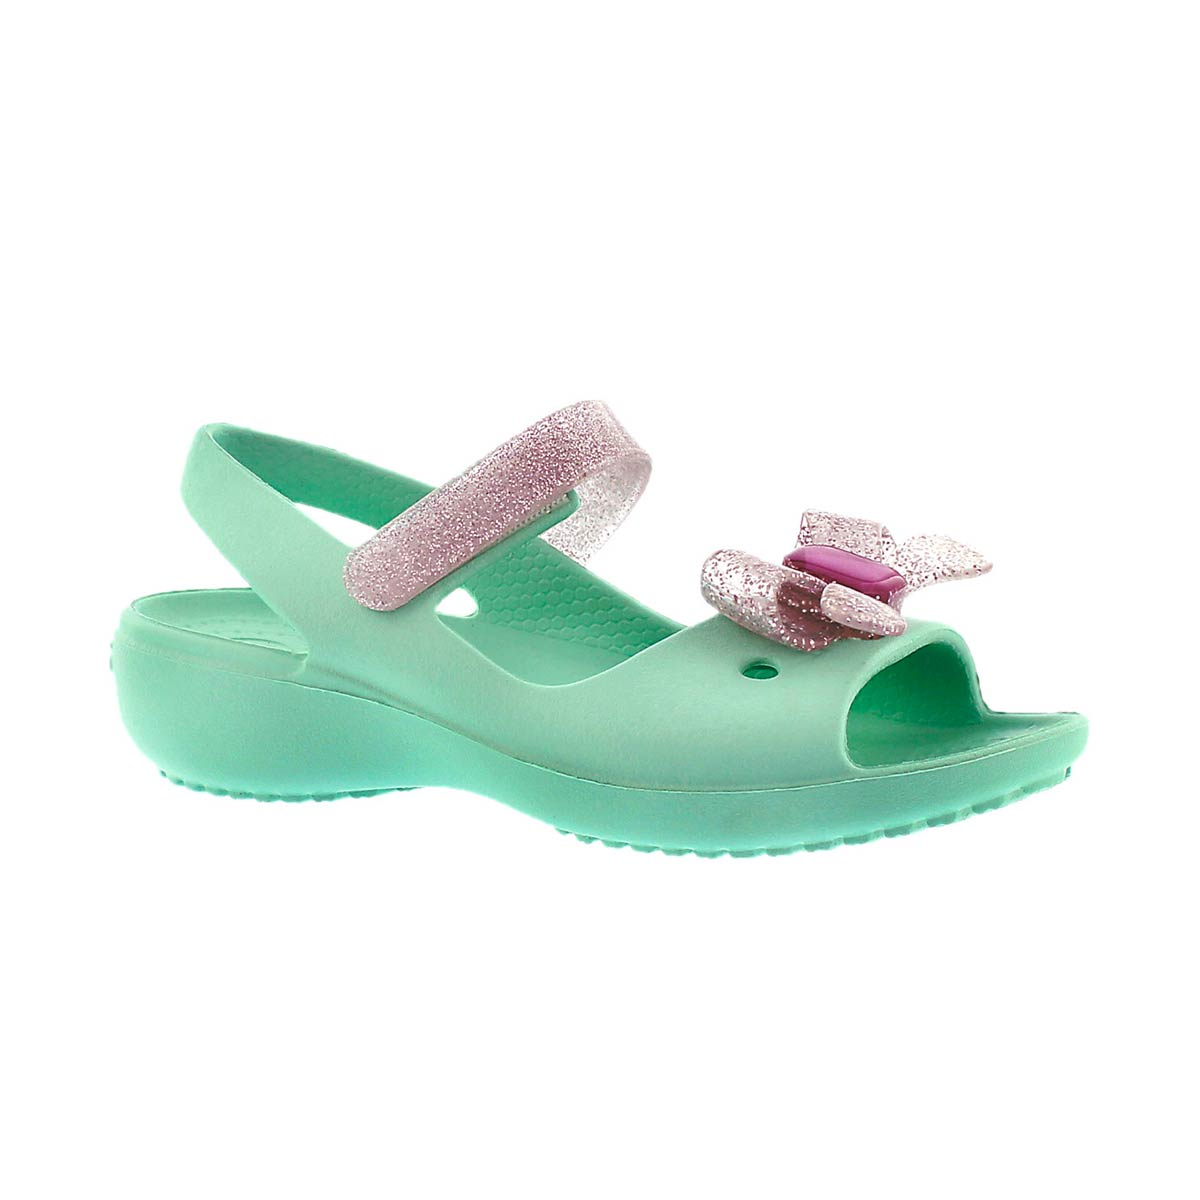 Sandales KEELEY SPRINGTIME MINI WEDGE, filles